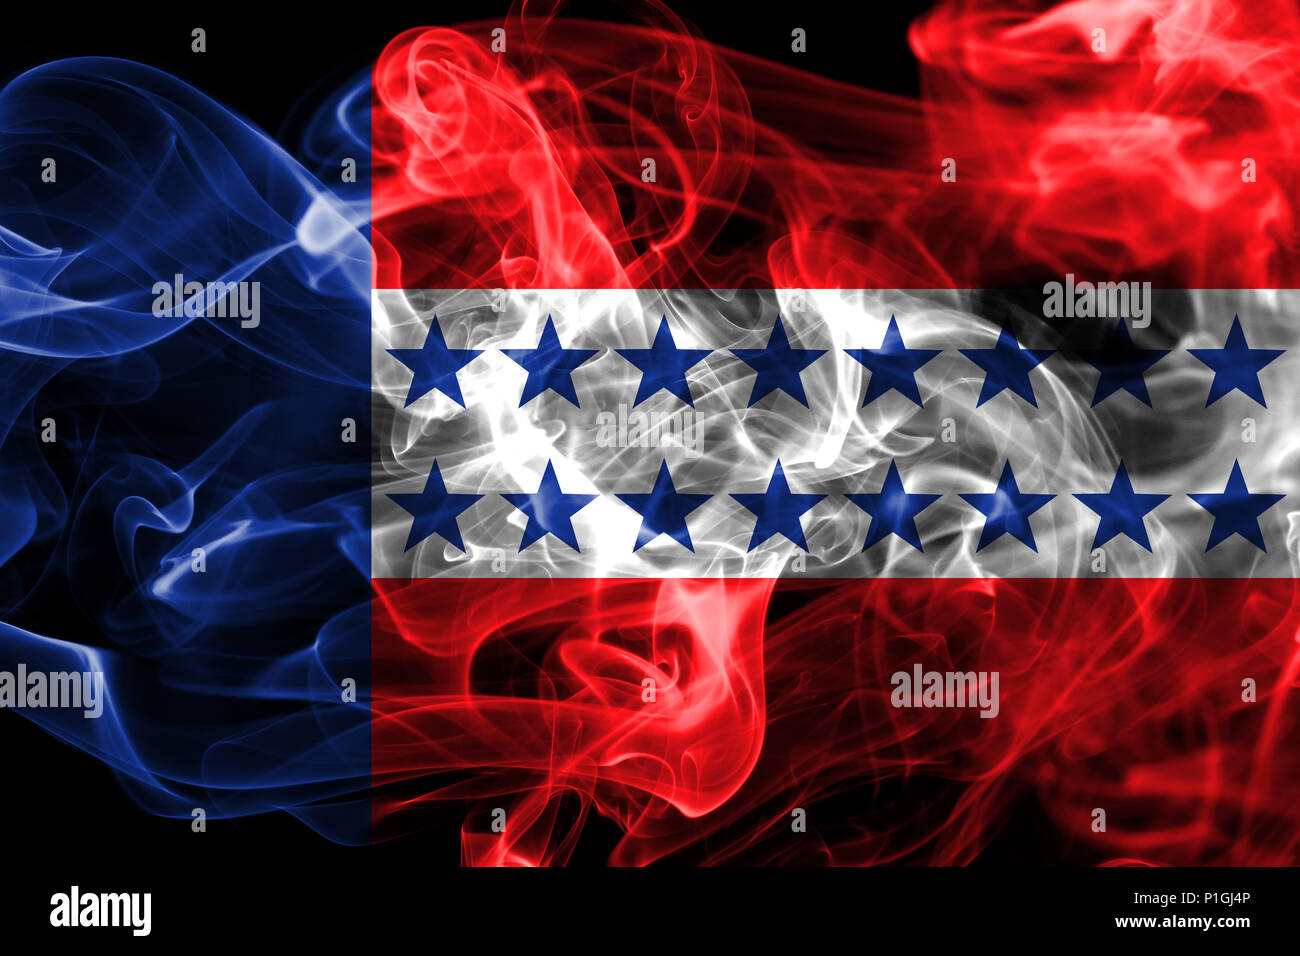 Tuamotu Archipelago smoke flag, groups of islands in French Polynesian - Stock Image